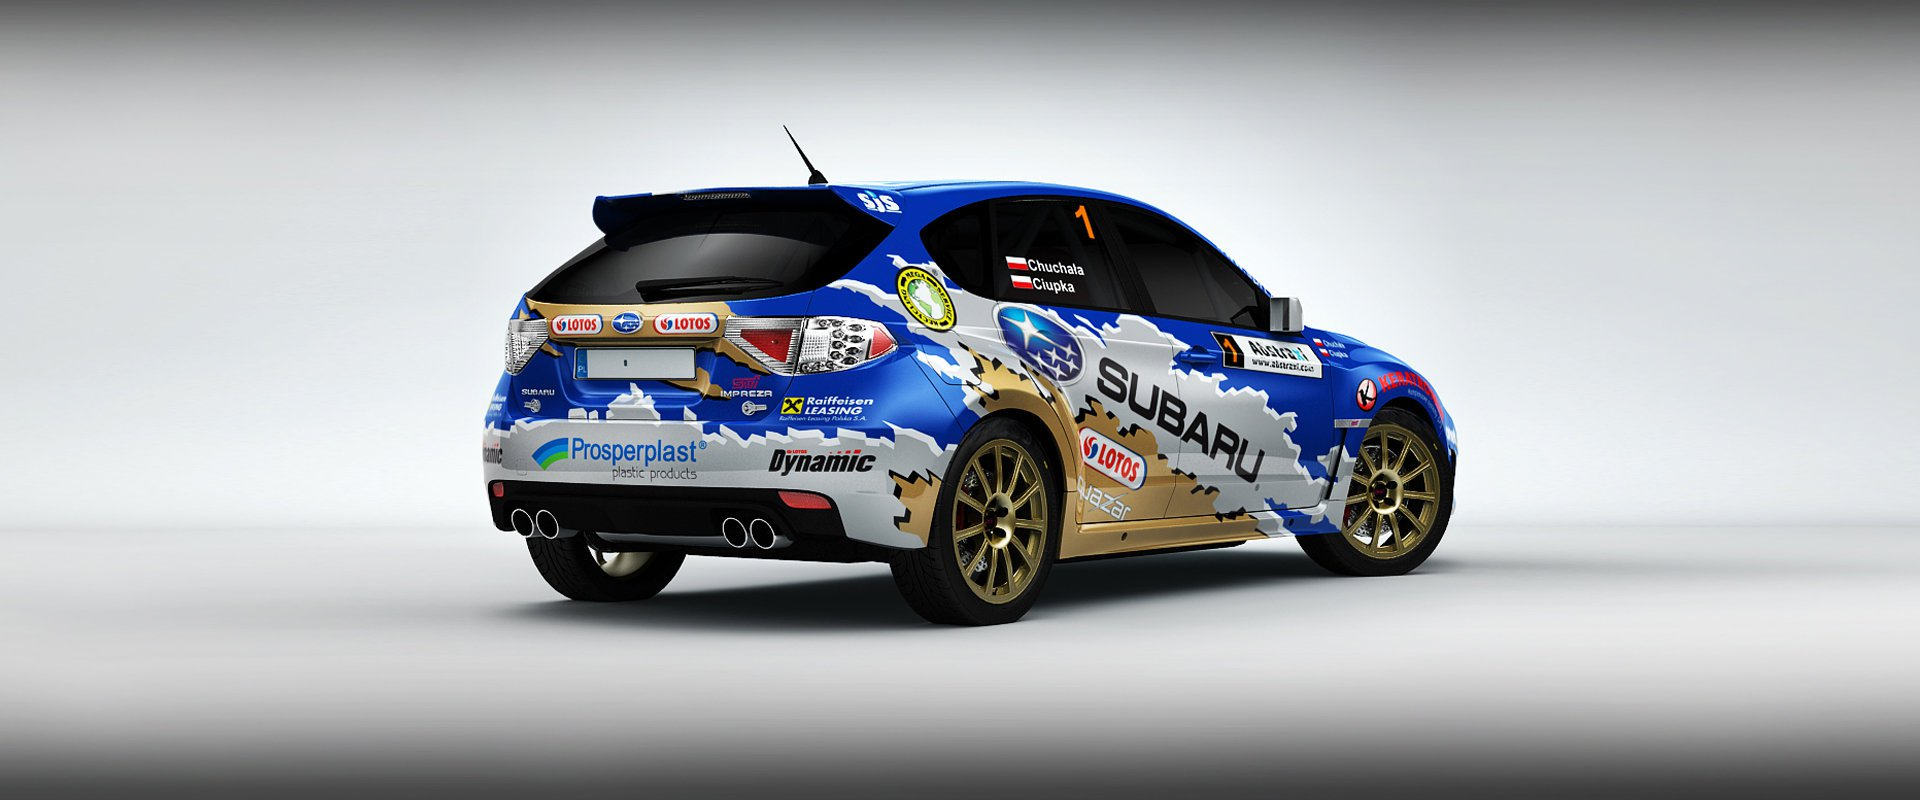 Subaru Poland Rally Team #3